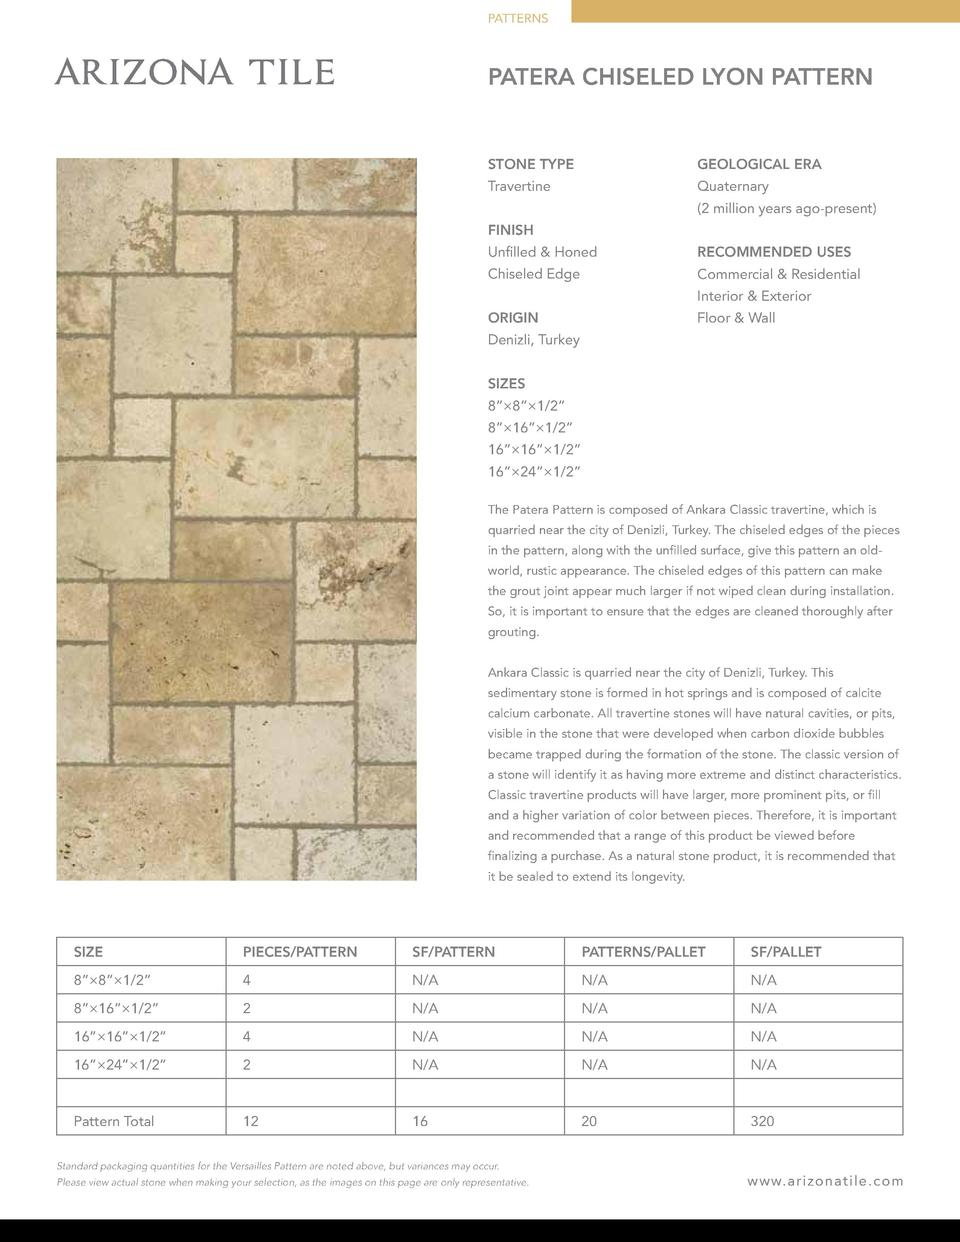 PATTERNS  PATERA CHISELED LYON PATTERN  STONE TYPE  GEOLOGICAL ERA  Travertine  Quaternary  2 million years ago-present   ...